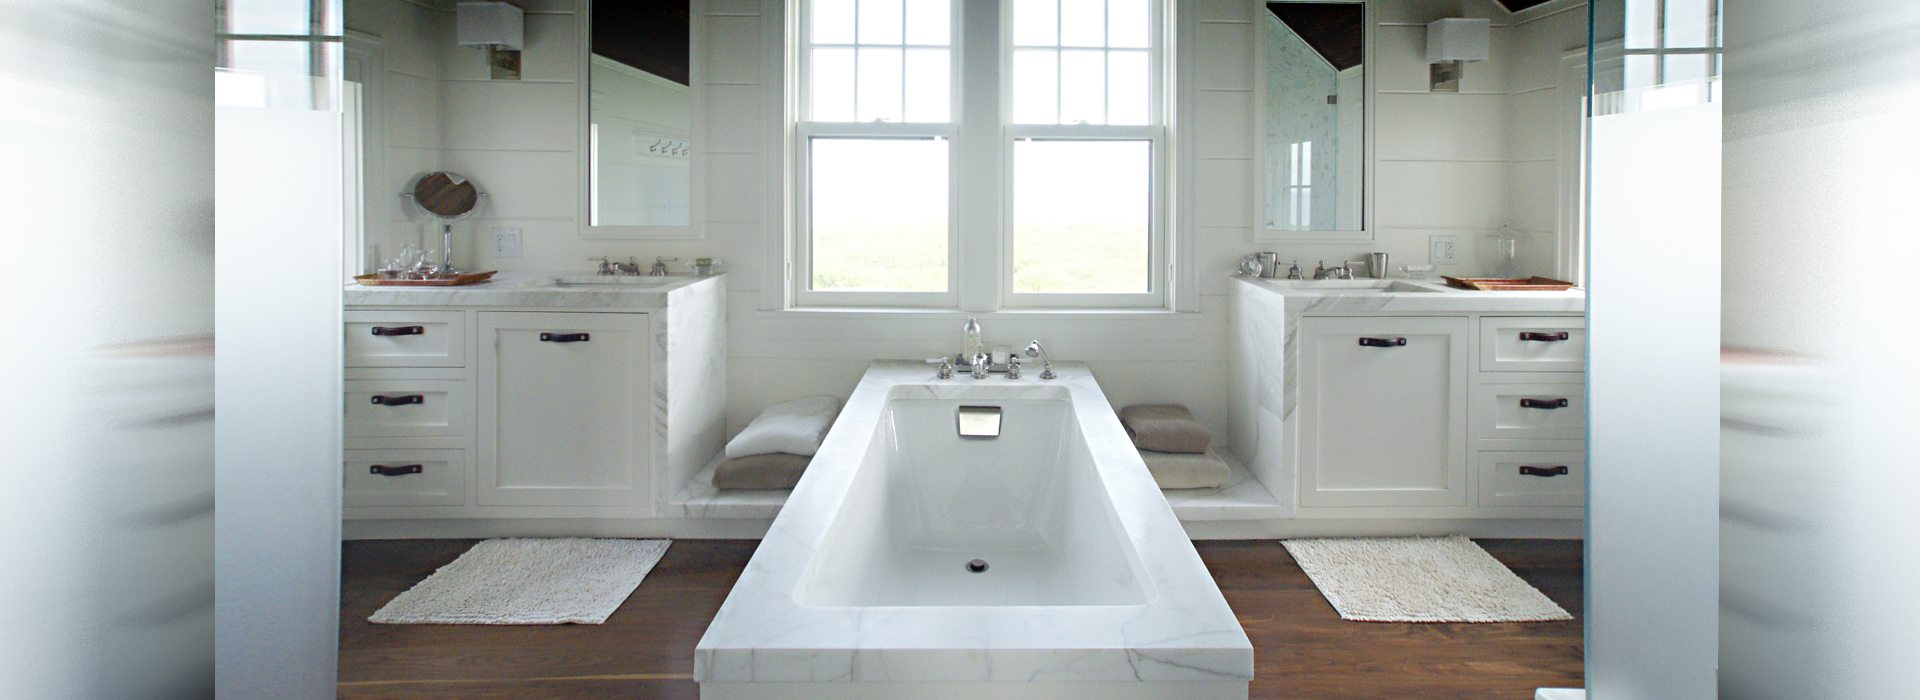 Bathroom Tile Gallery Plumbing Fixtures Bath Accessories Housefitters And Tile Gallery